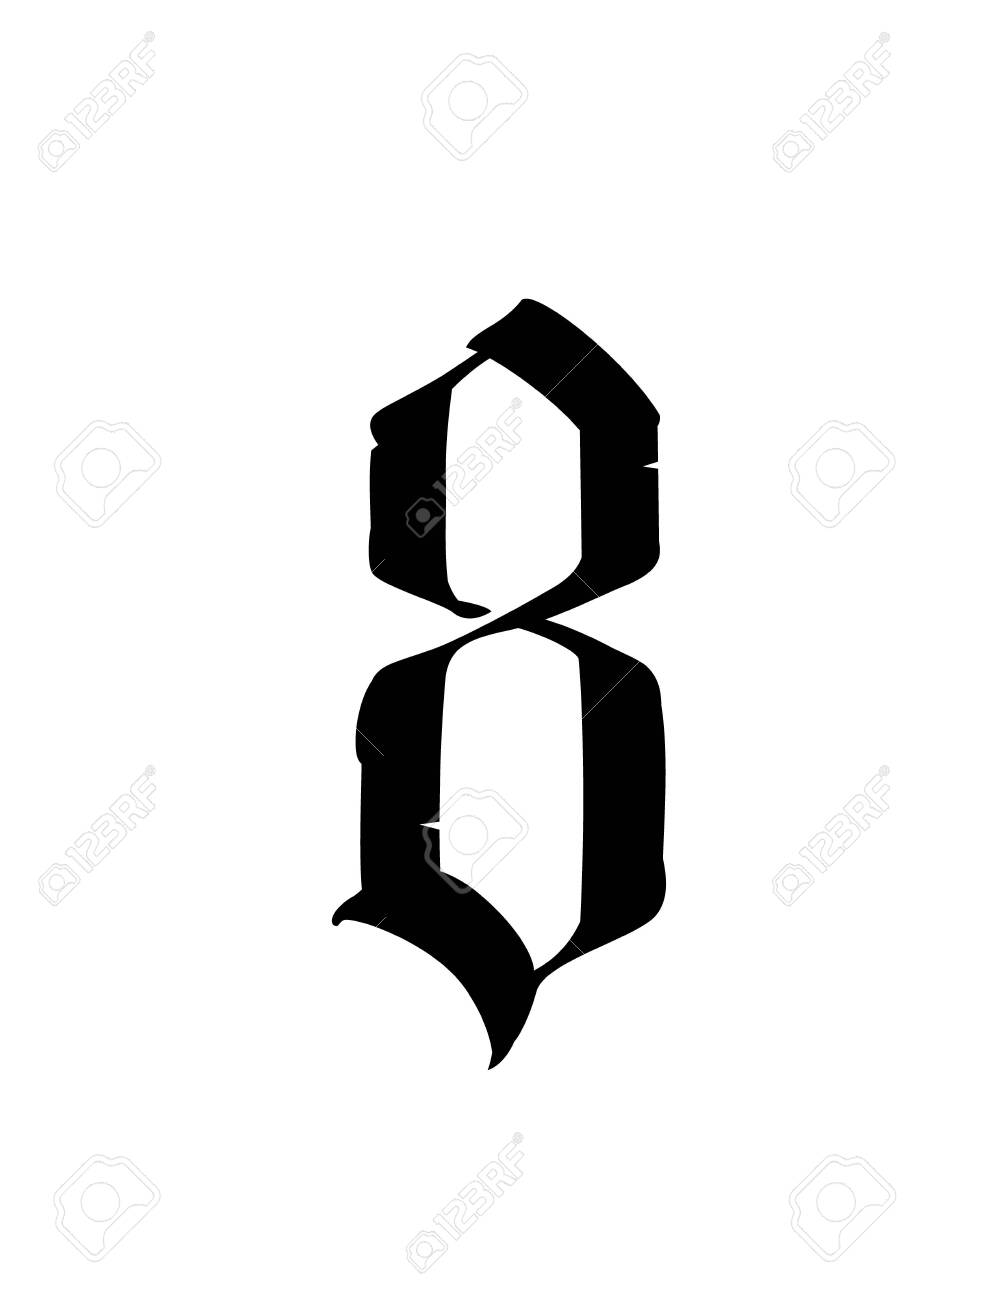 Gothic Calligraphy Numbers : gothic, calligraphy, numbers, Numbers, Gothic, Style., Vector., Symbols, Isolated.., Royalty, Cliparts,, Vectors,, Stock, Illustration., Image, 131409112.